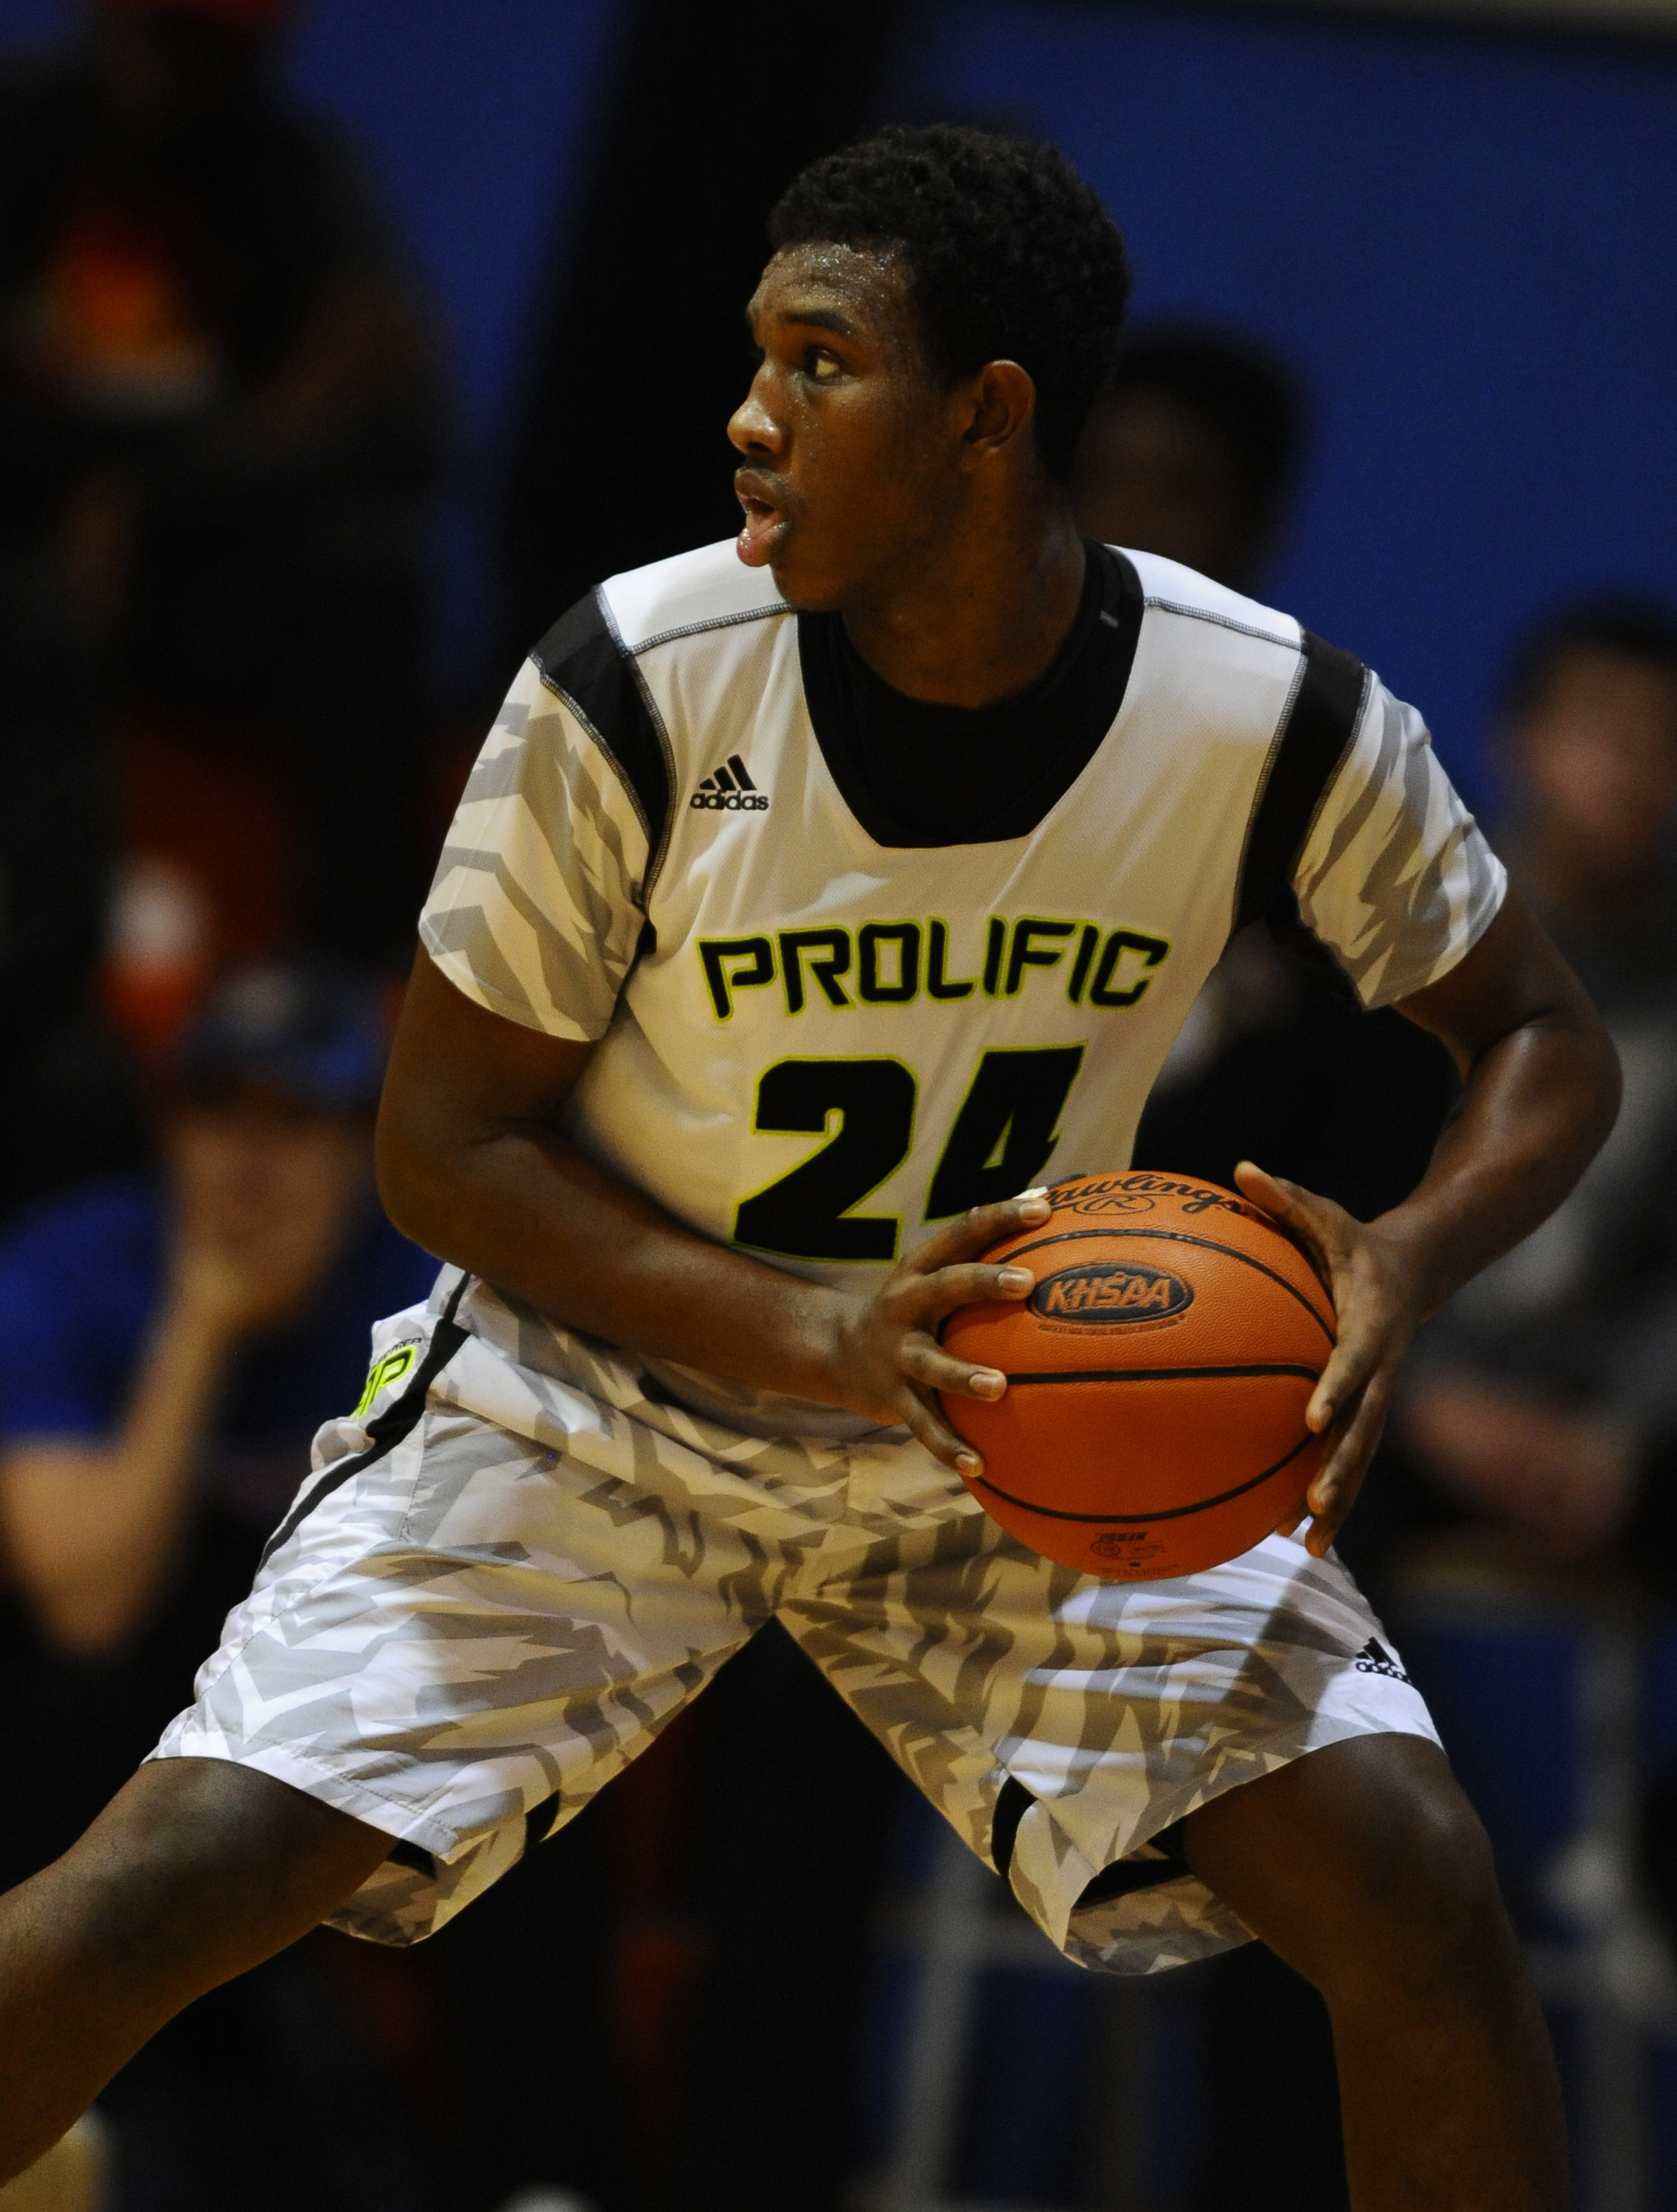 12/5/15 8:54:25 PM -- Benton, KY, U.S.A -- Prolific Prep guard Abu Kigab (24) looks to pass the ball against Advanced Prep at the Grind Session basketball tournament. -- Photo by Christopher Hanewinckel USA TODAY Sports Images, Gannett ORG XMIT: US 134138 Grind Hoops 12/5/2015 [Via MerlinFTP Drop]